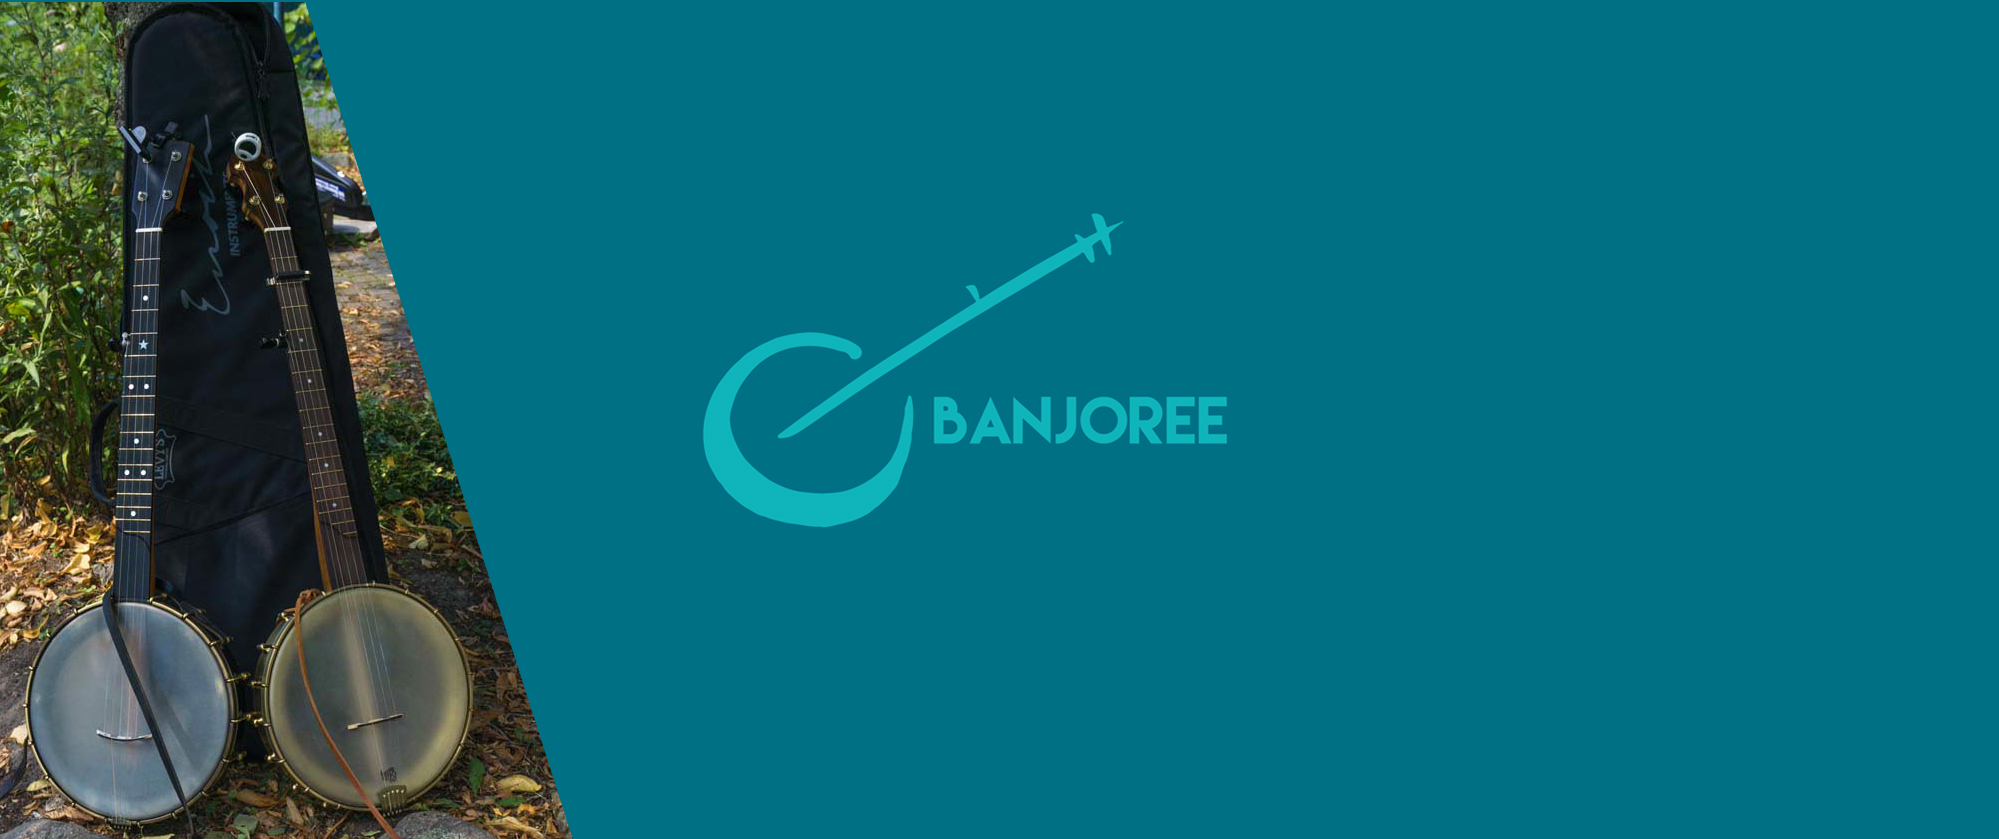 <!--<span class='s5_boldfont'><a href='index.php/news'>BANJOREE  2020</a></span> -->